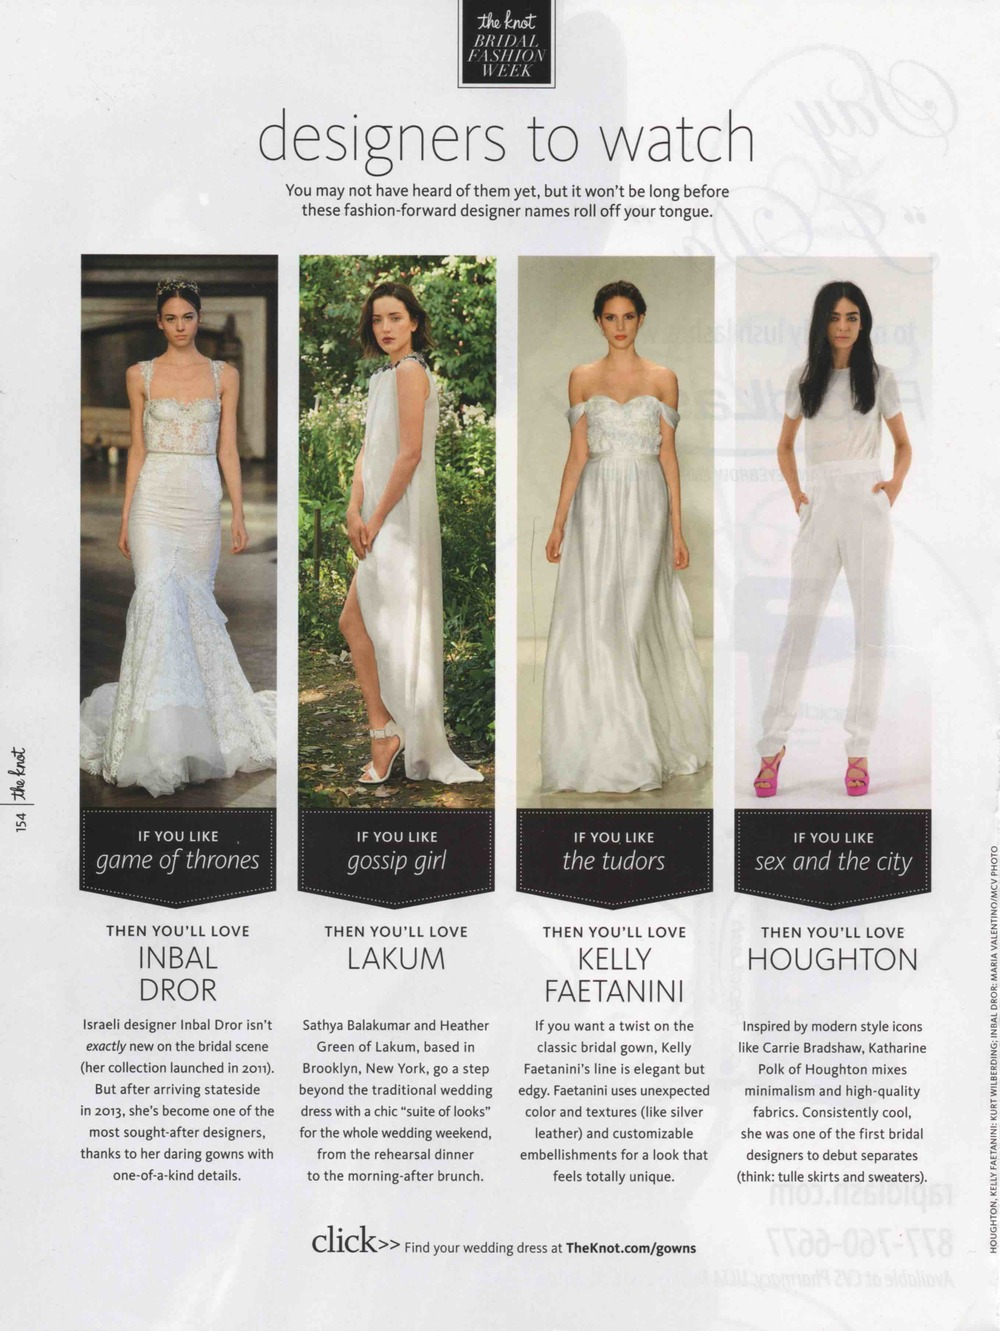 The Knot Spring 2015 Designers to Watch.jpg